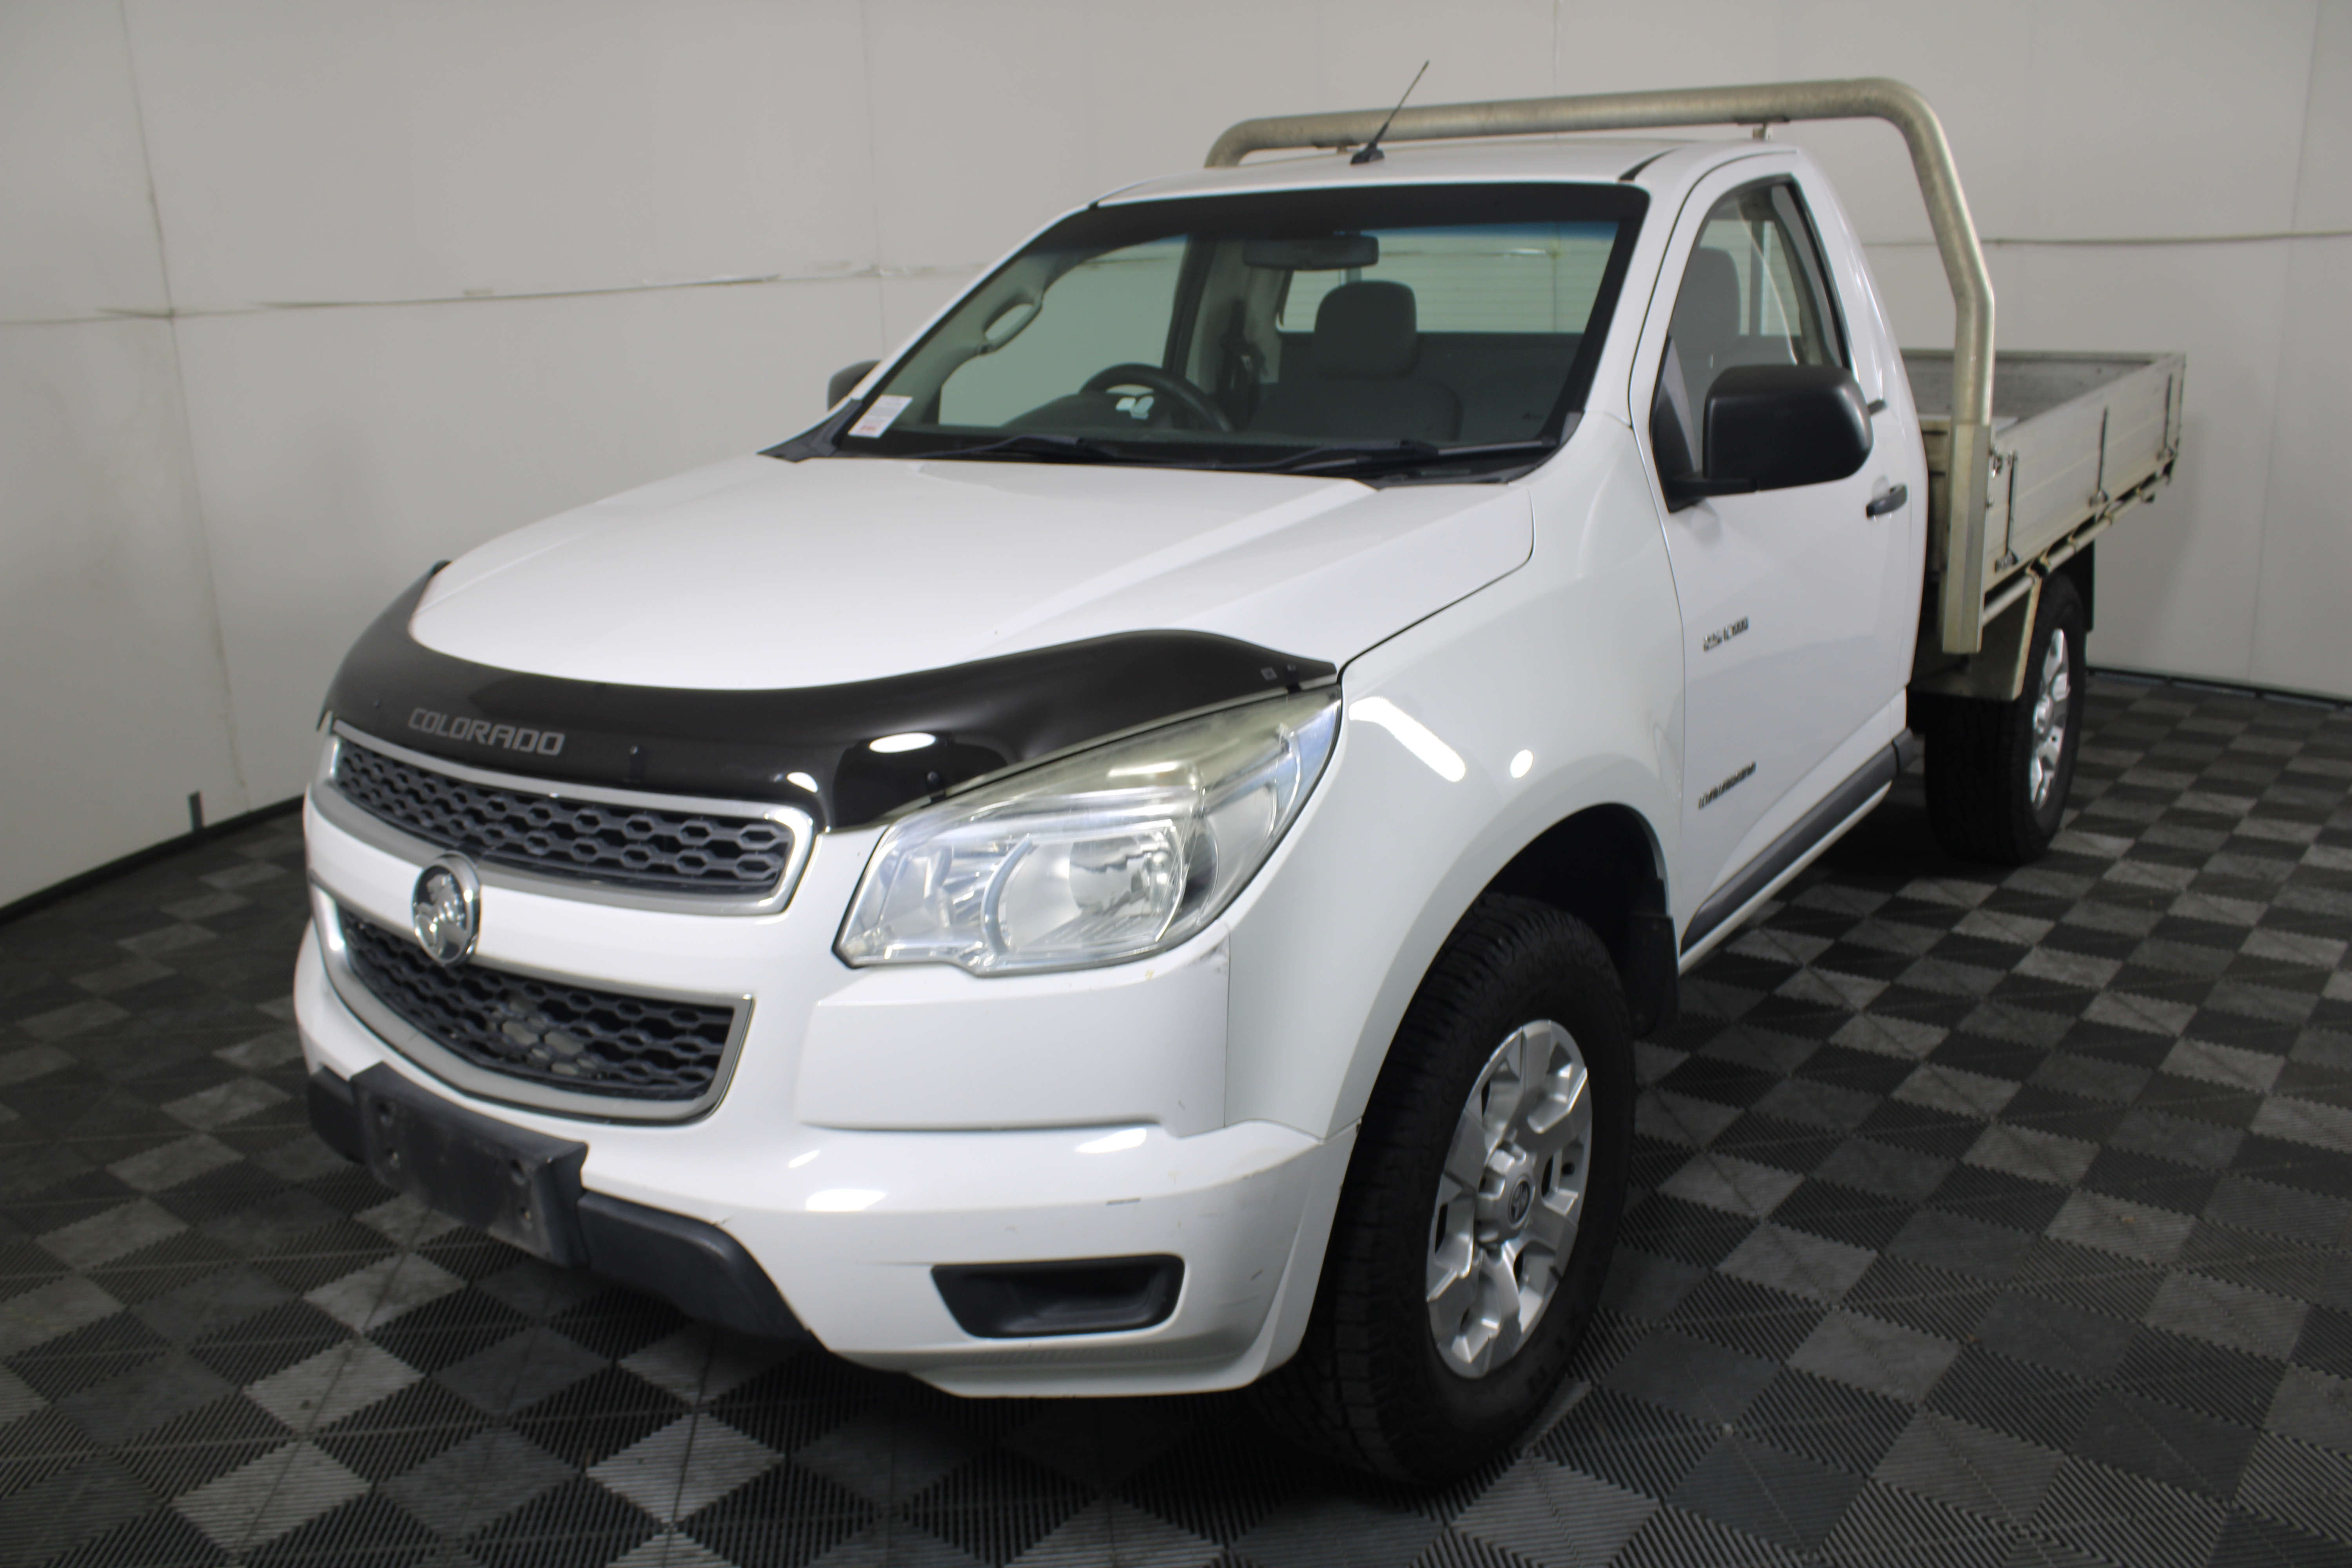 Holden Colorado 4X2 DX RG Turbo Diesel Manual Cab Chassis